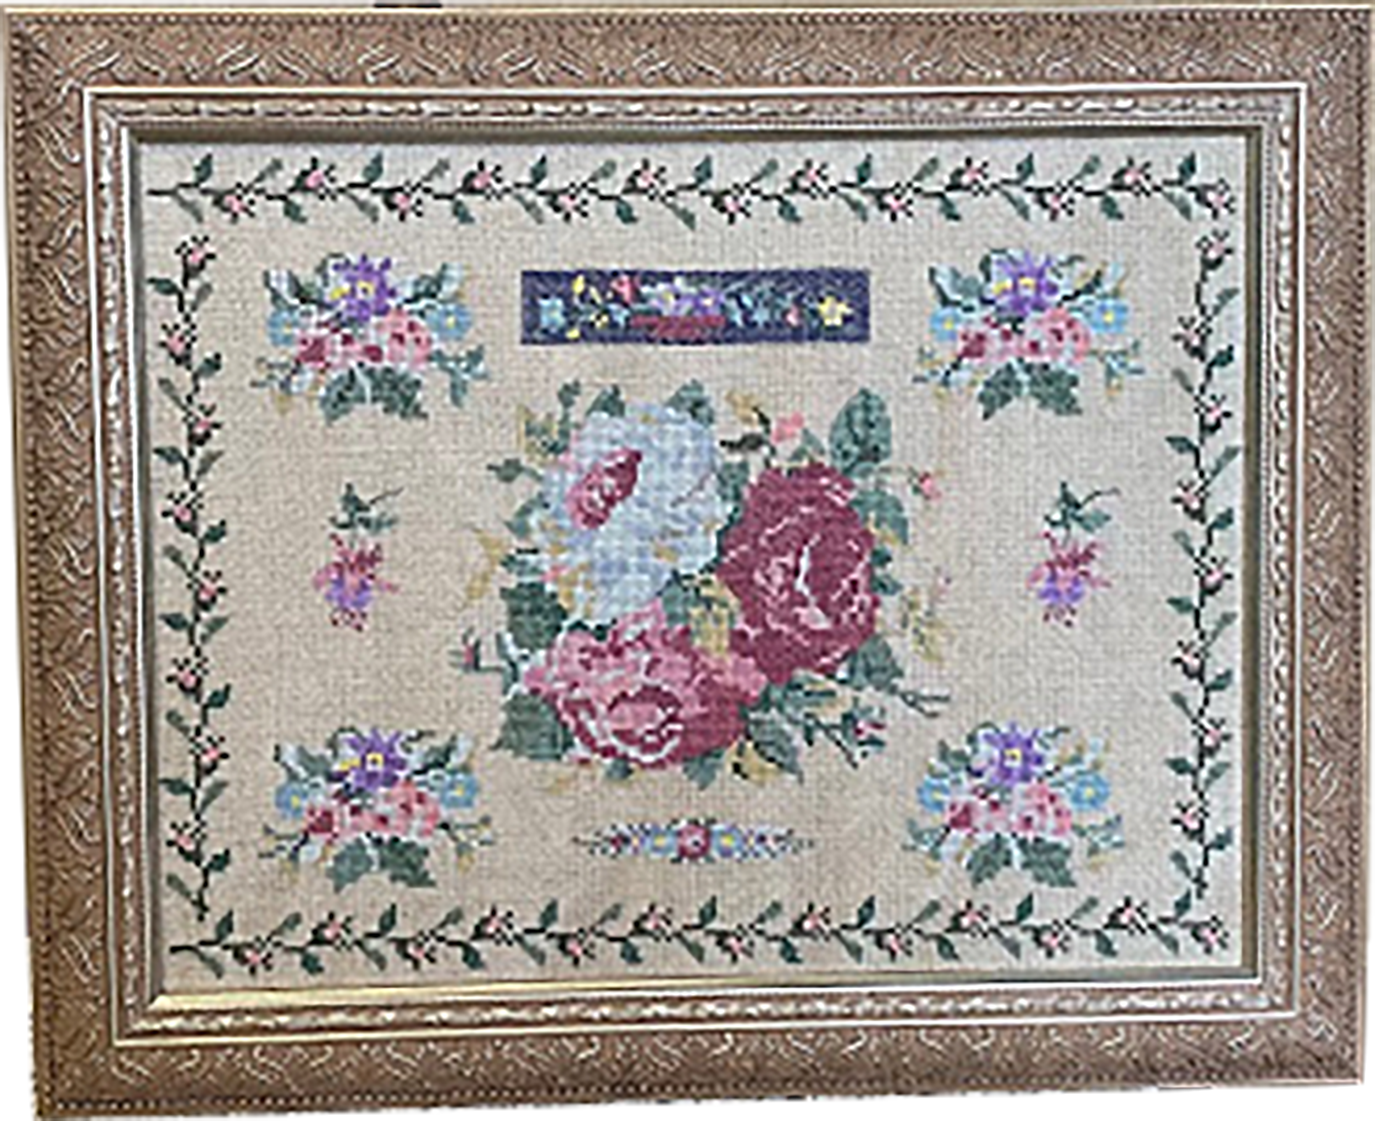 Rose Garden Historic Reproduction Sampler Wendy Wilson